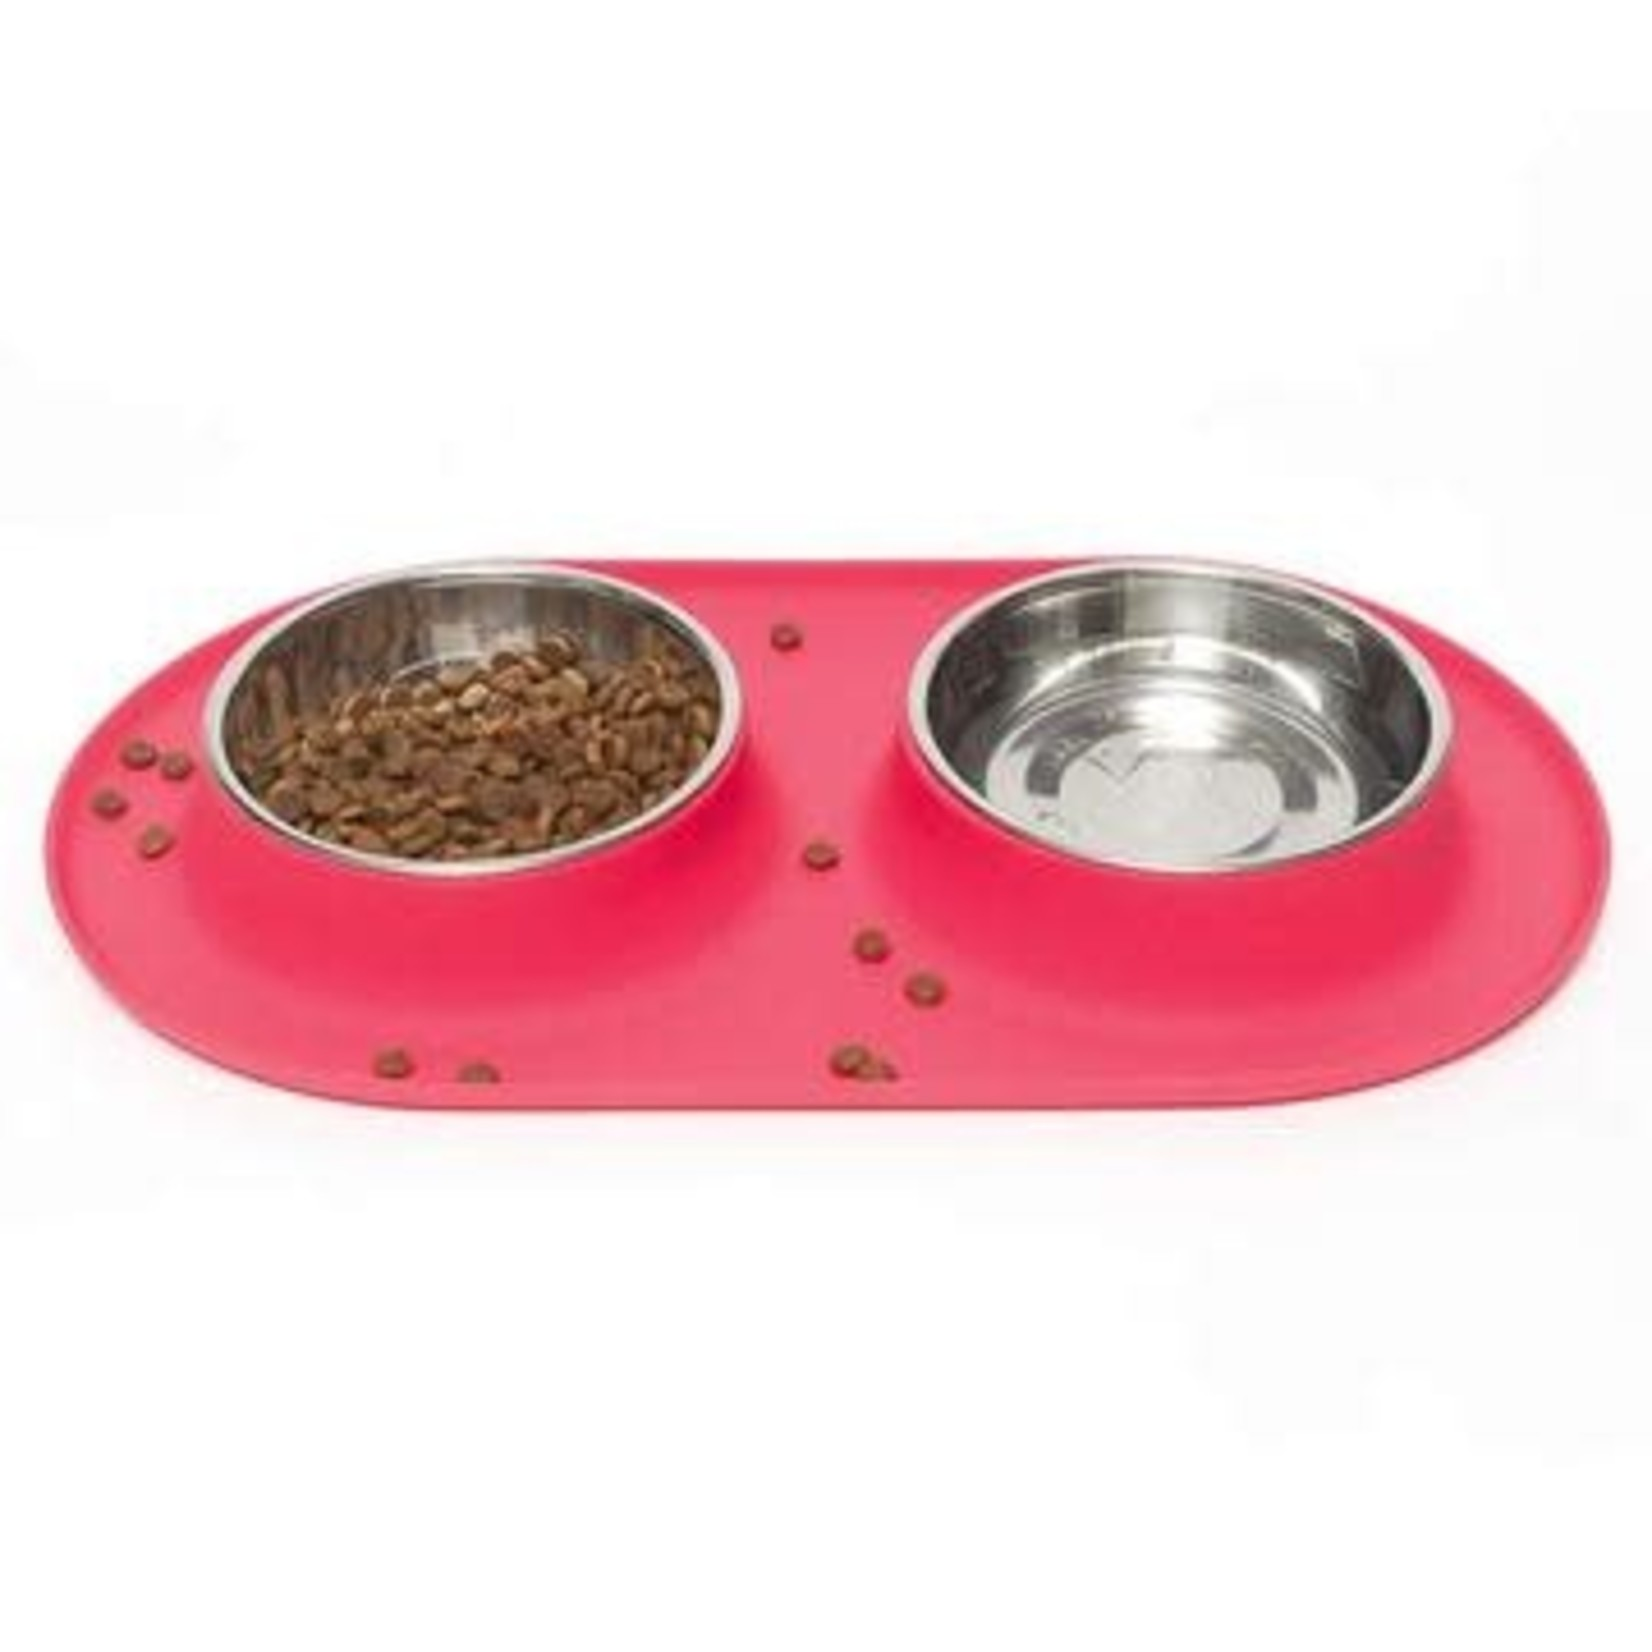 Messy Mutts Messy Mutts Dog Double Silicone Feeder Red 3 CUP